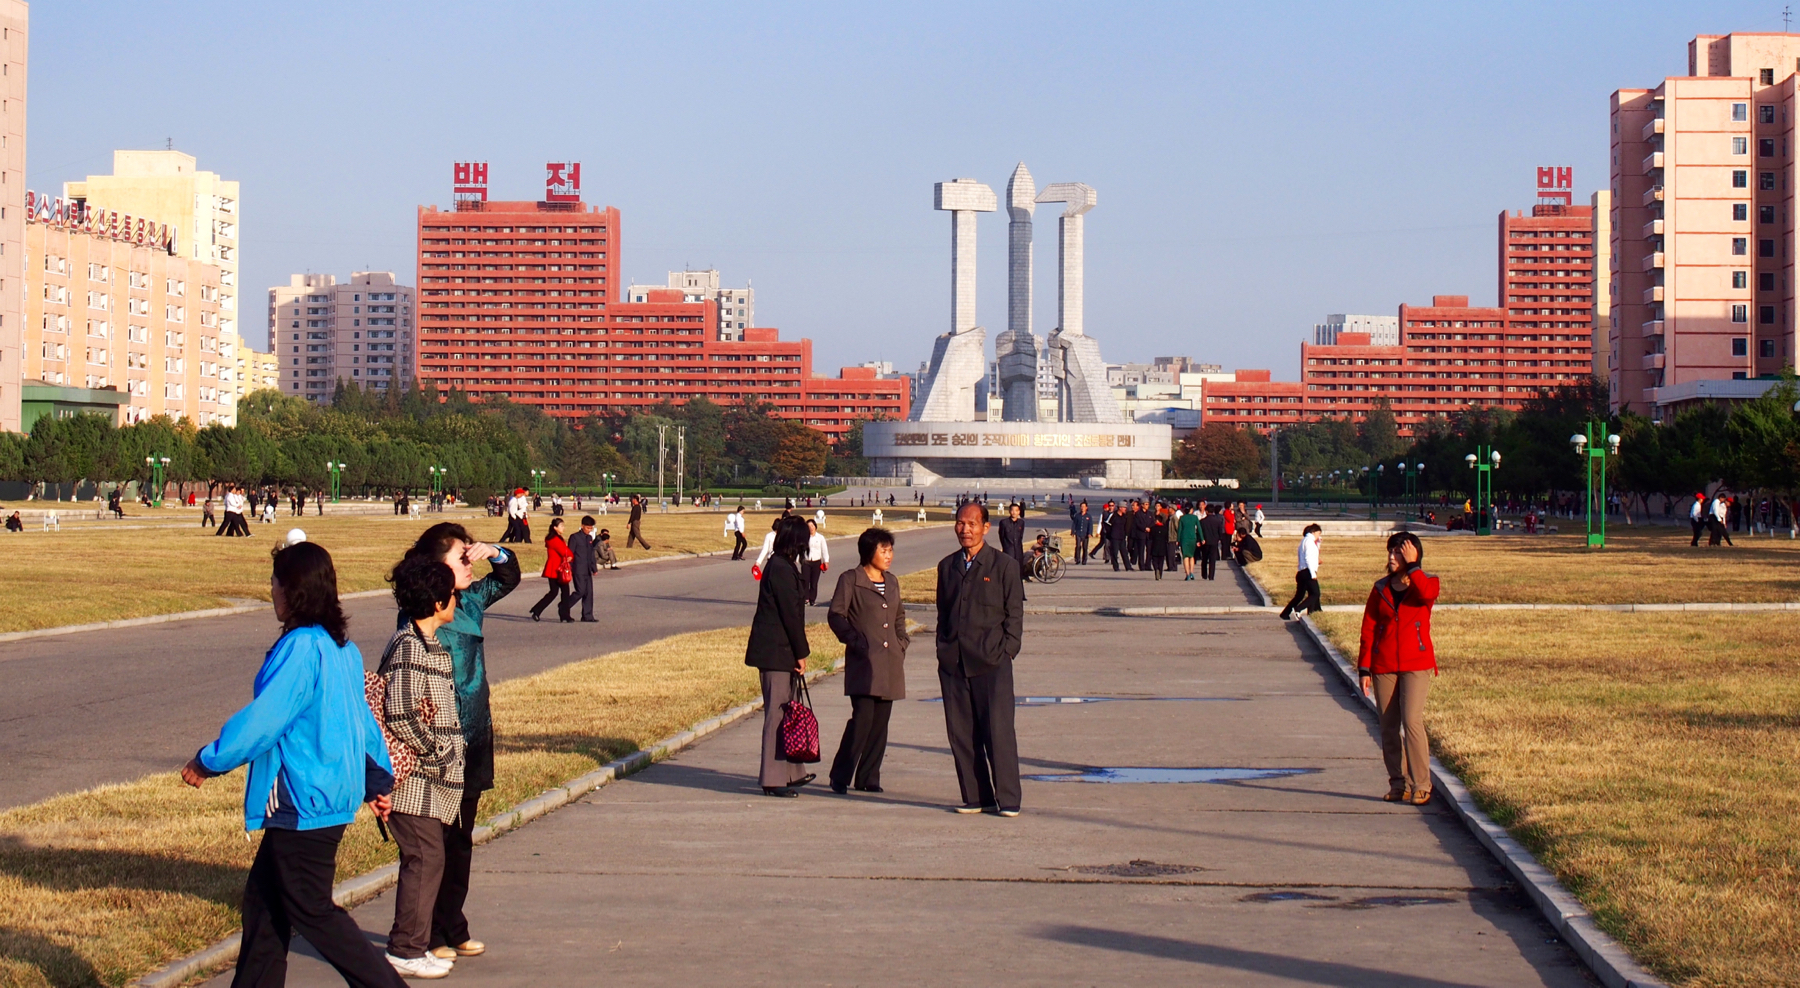 A beautiful day for a stroll in the park in front of the Workers Party Monument